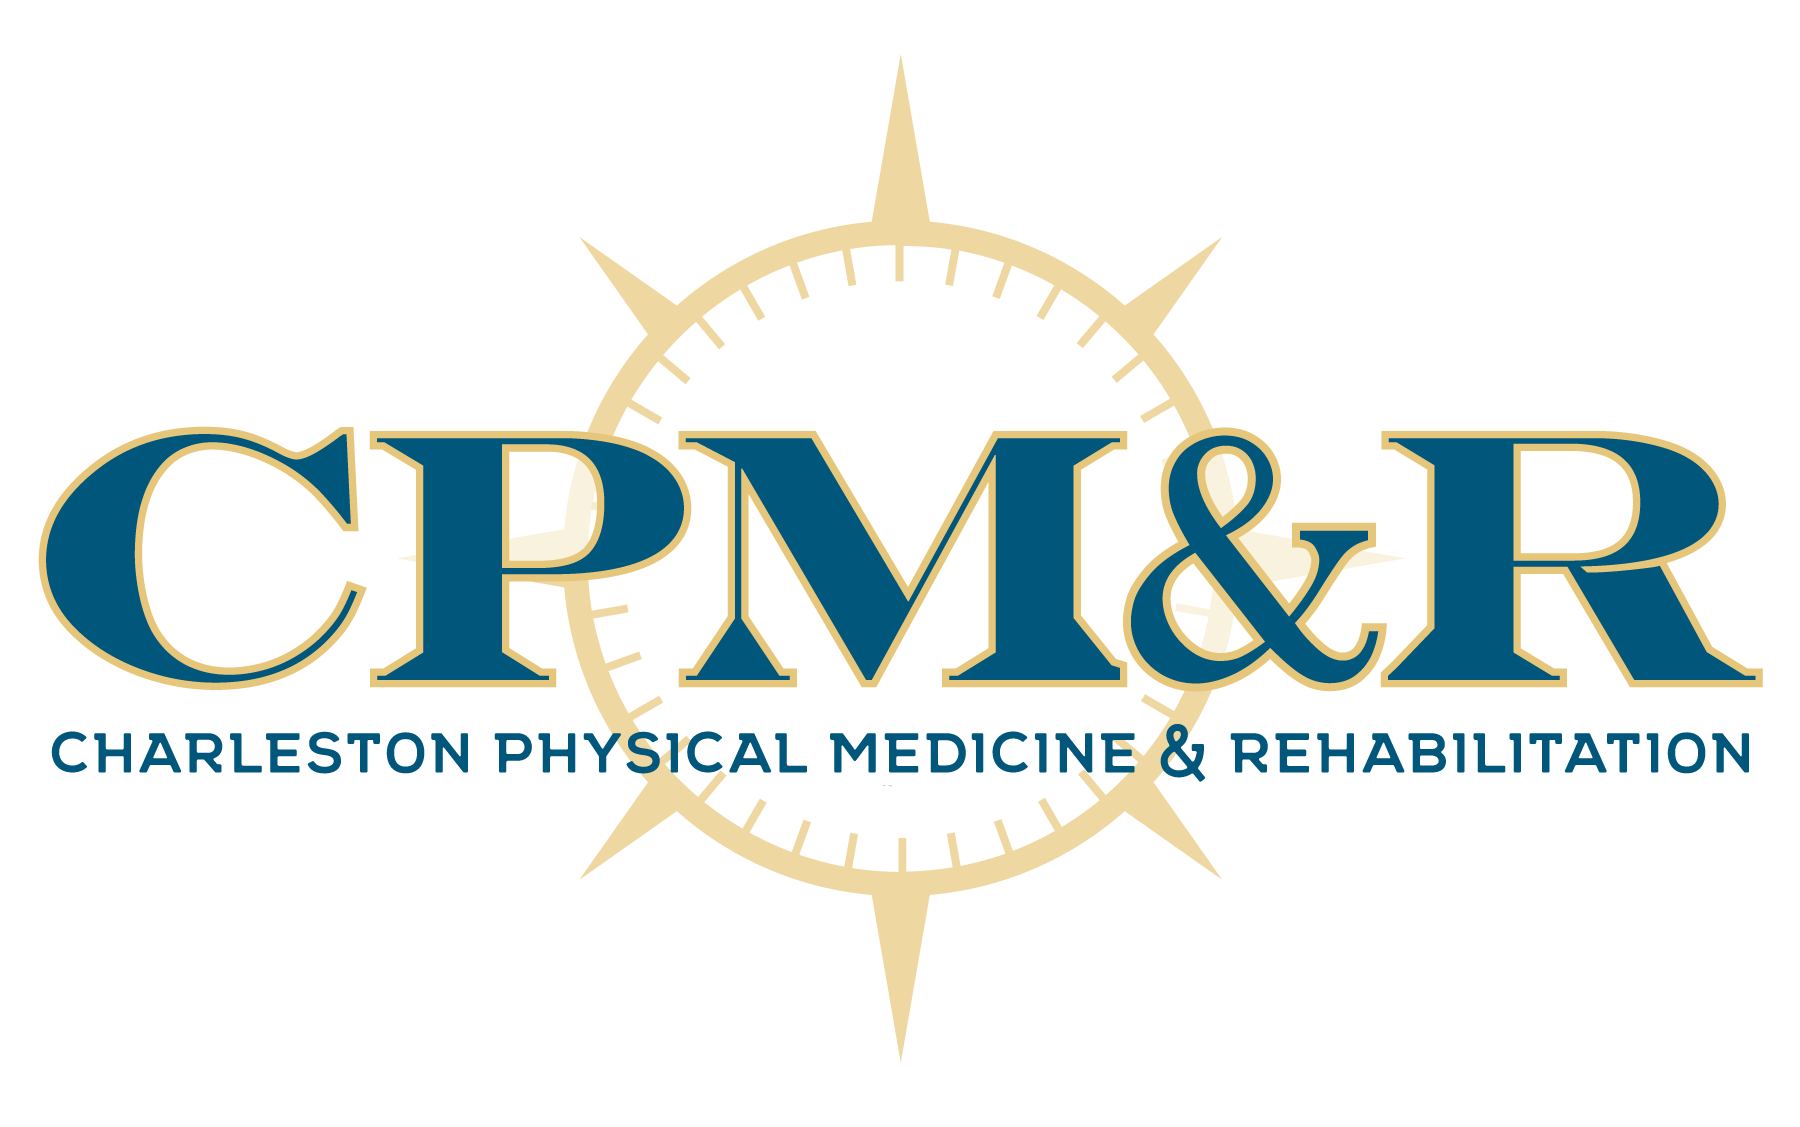 Charleston Physical Medicine & Rehabilitation